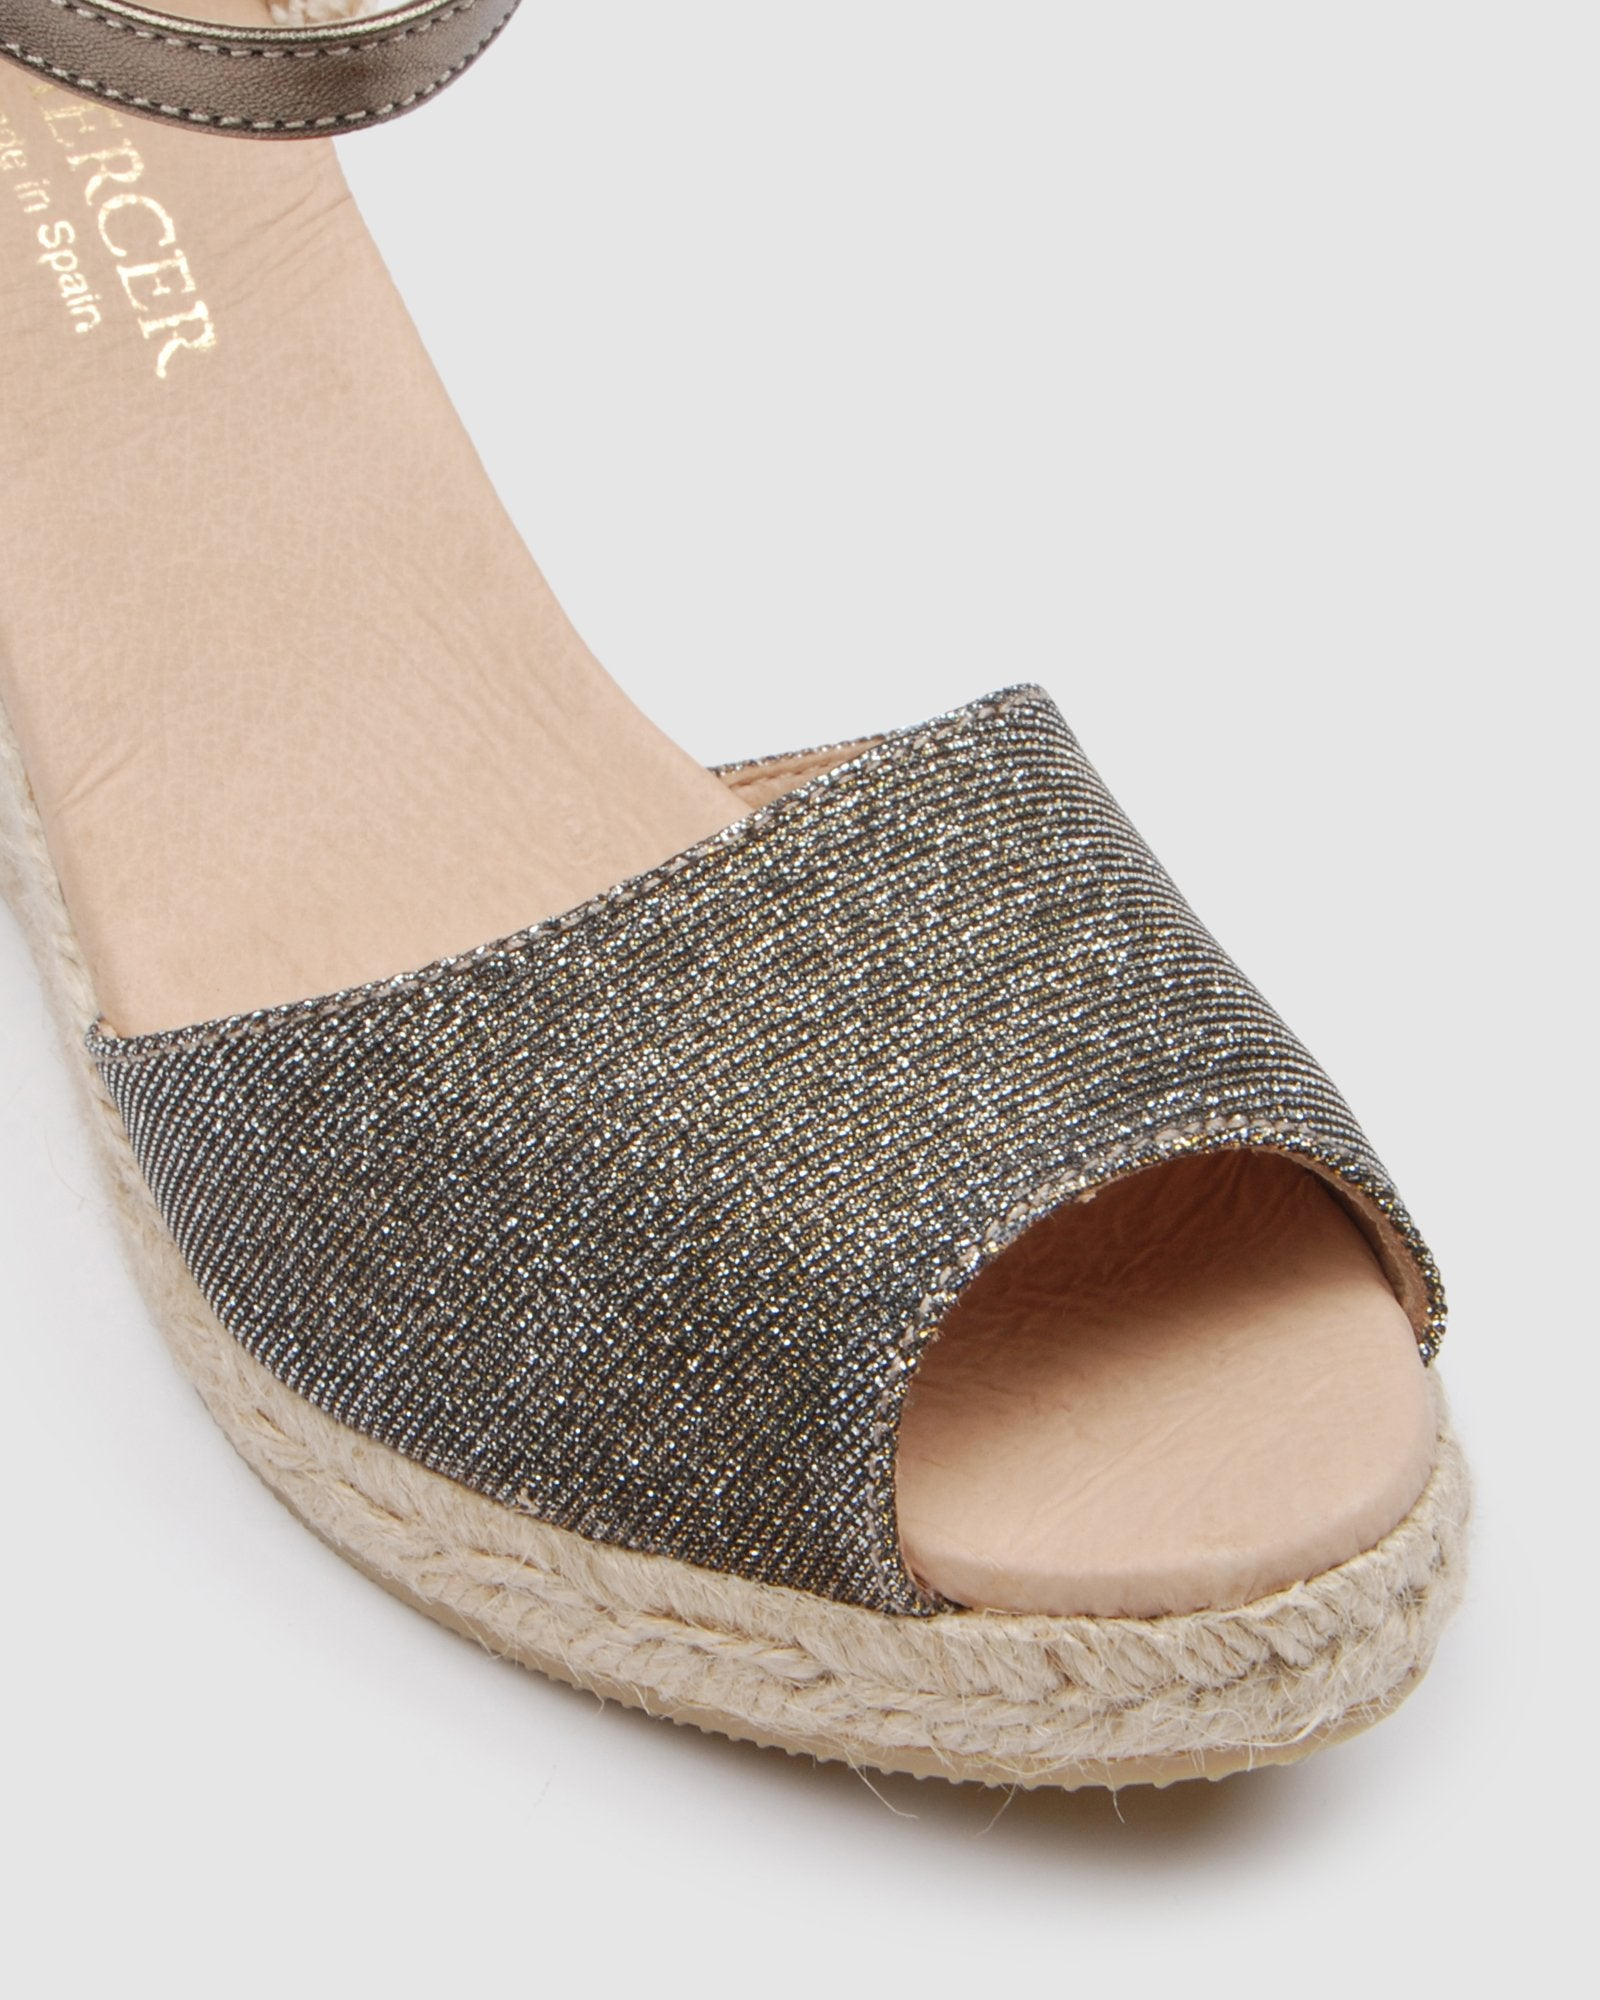 OPHRA HIGH HEEL WEDGE ESPADRILLES METALLIC